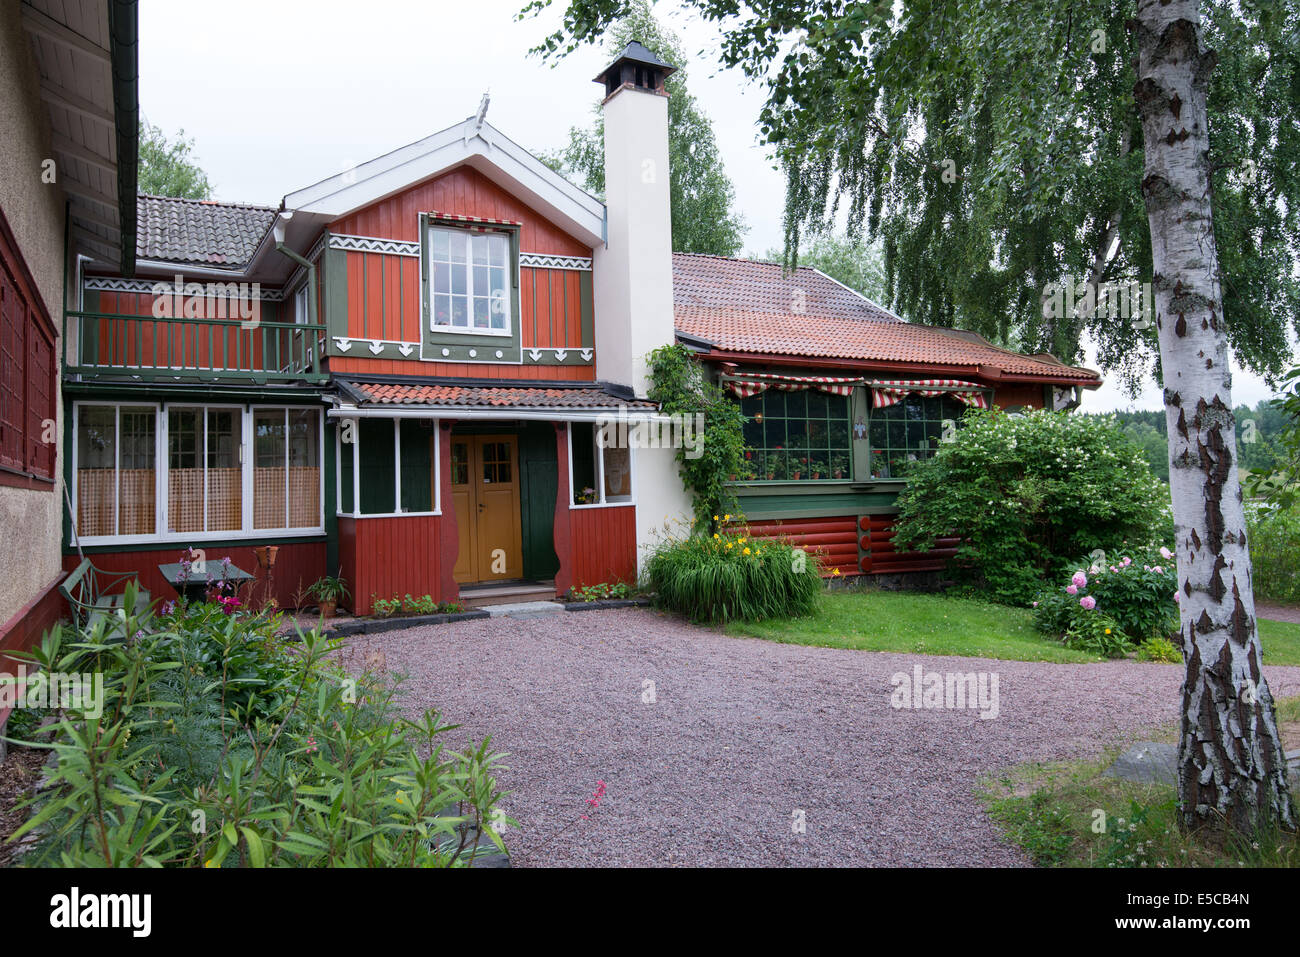 The world famous home of Swedish artists Carl and Karin Larsson at Lilla Hyttnas in Sundborn, Sweden - Stock Image